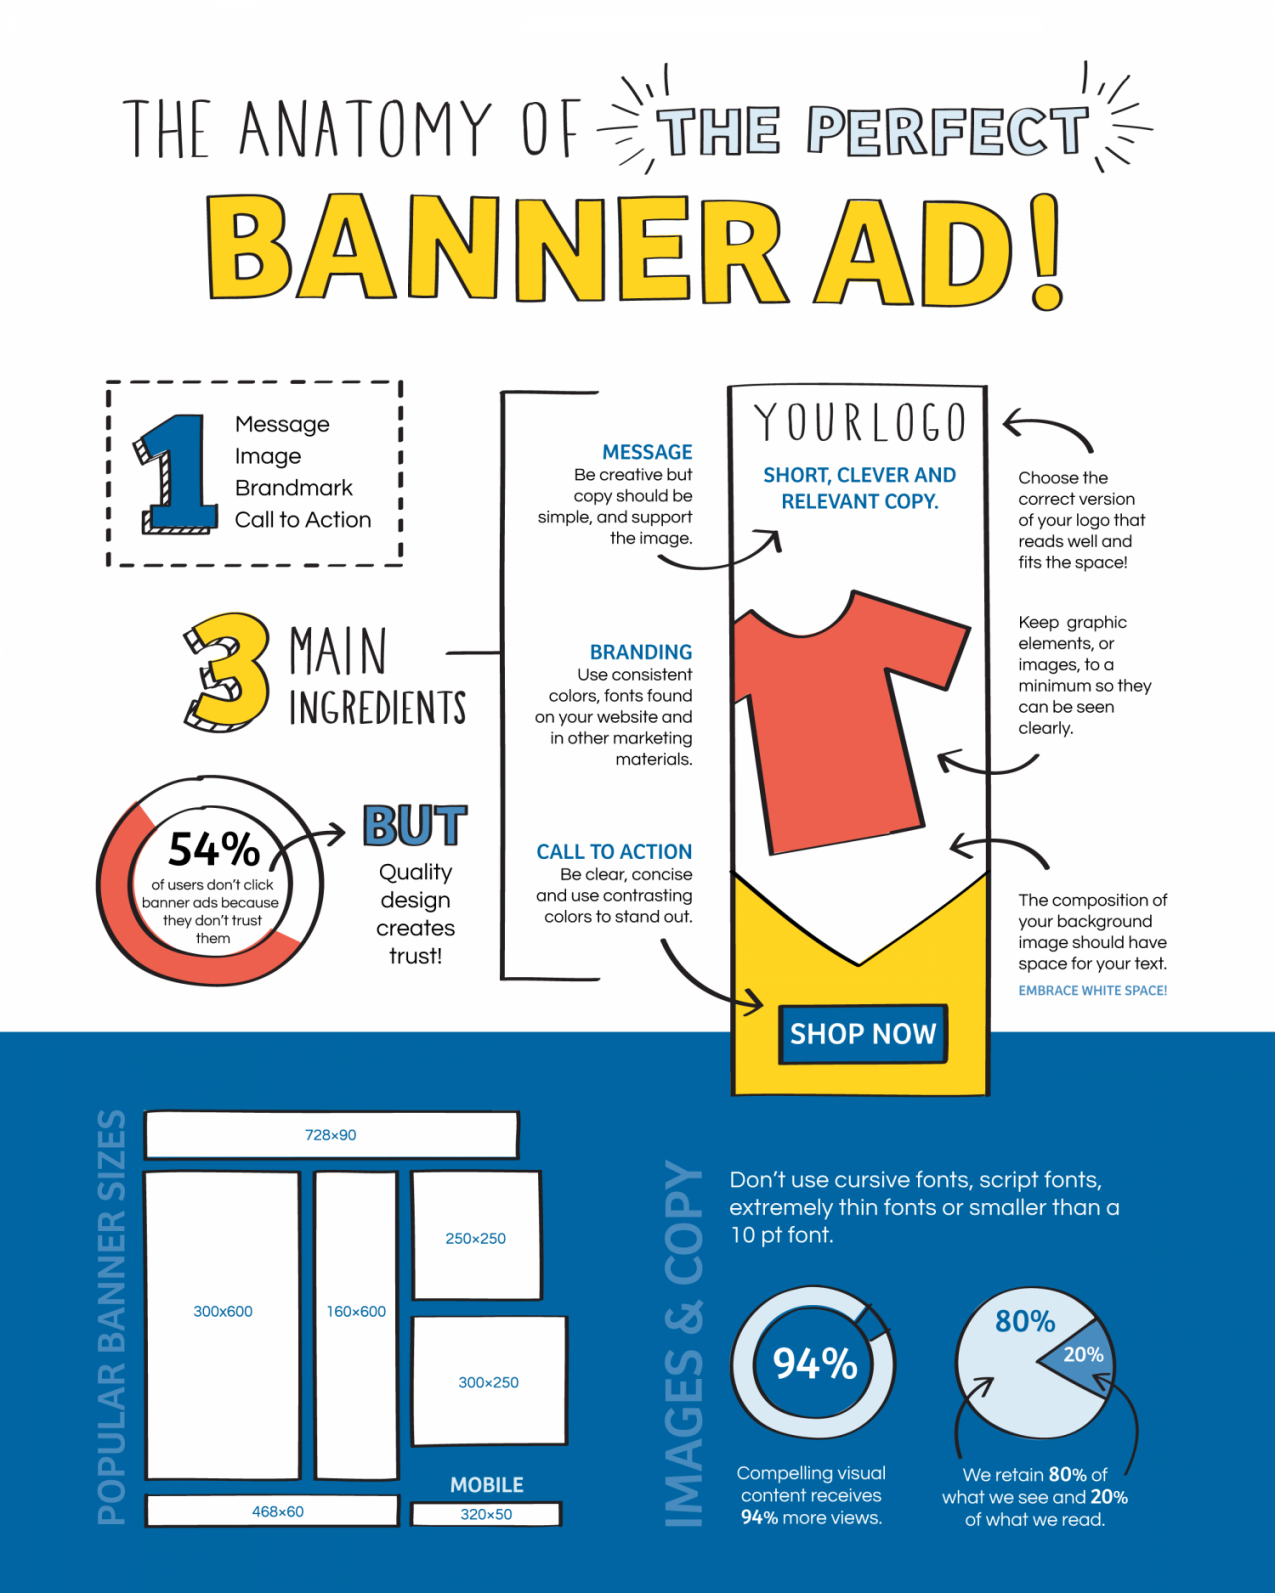 The Anatomy of the Perfect Banner Ad